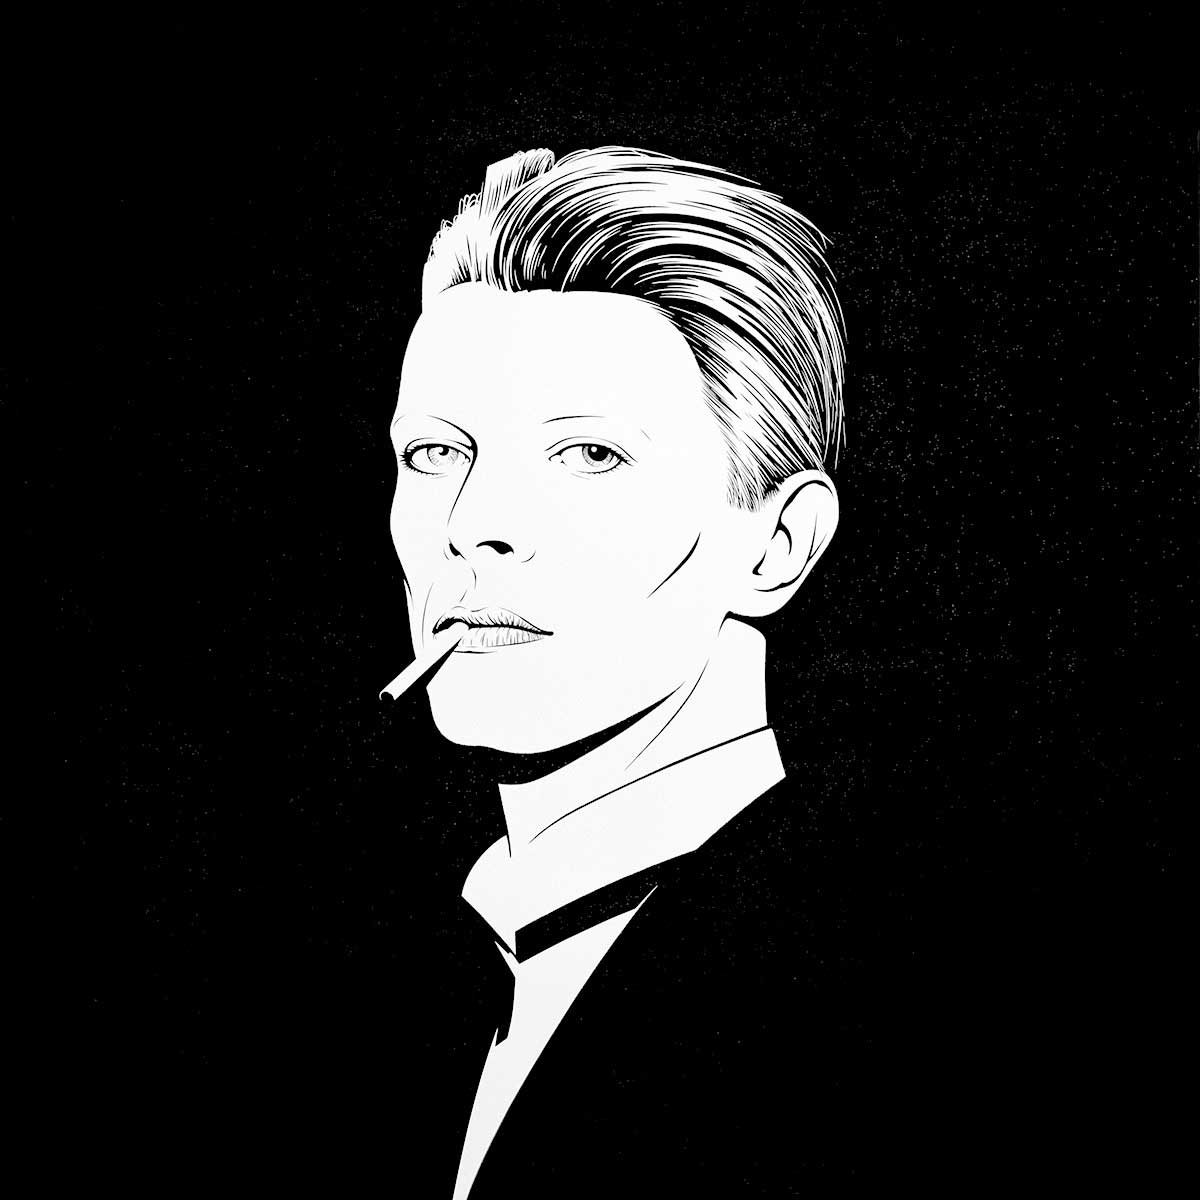 White Duke #4 (2016) by Gregory Gilbert-Lodge